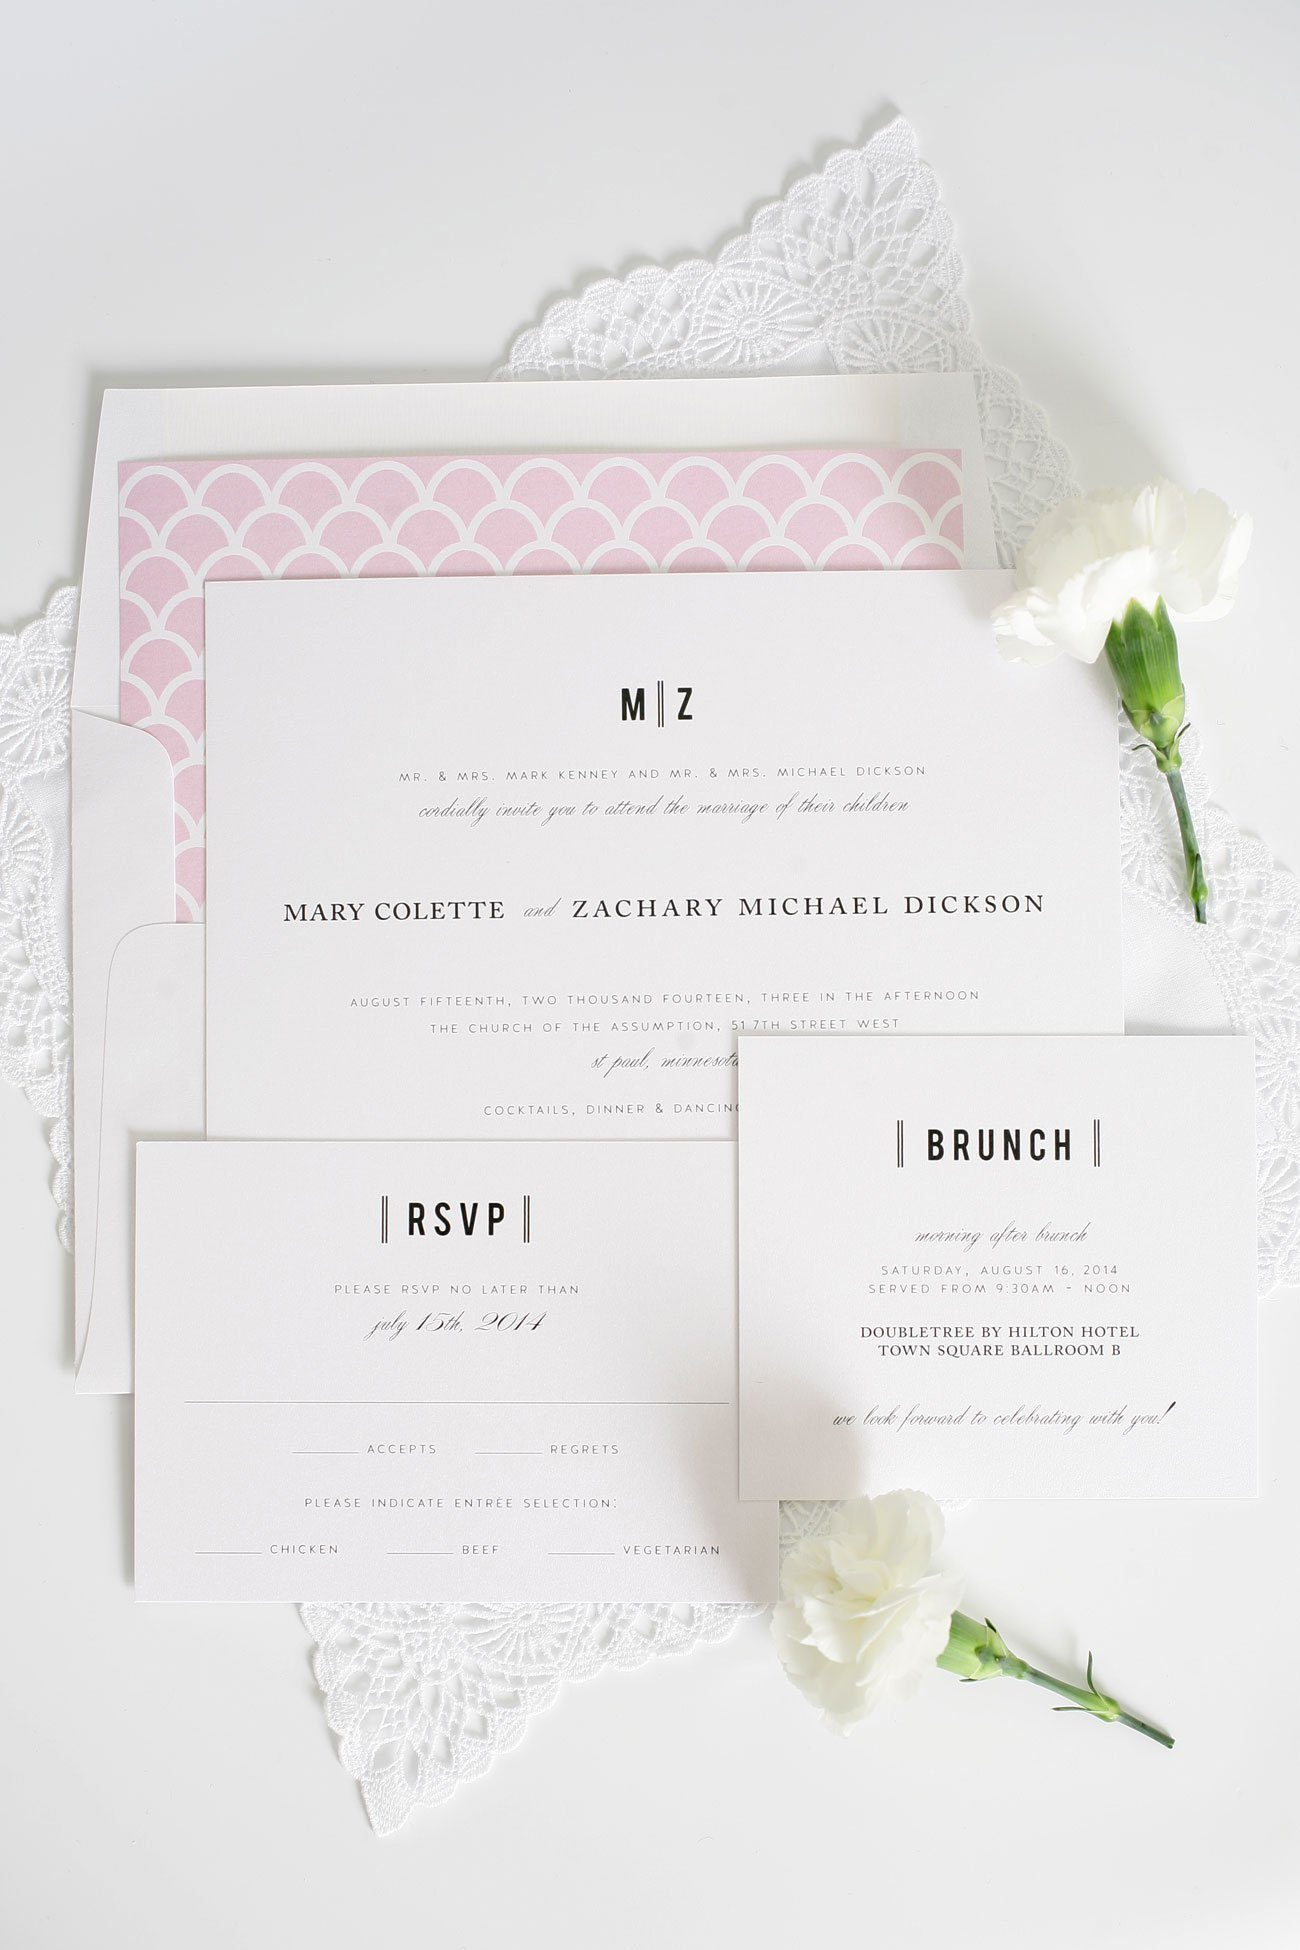 Scallop wedding invitations in pink